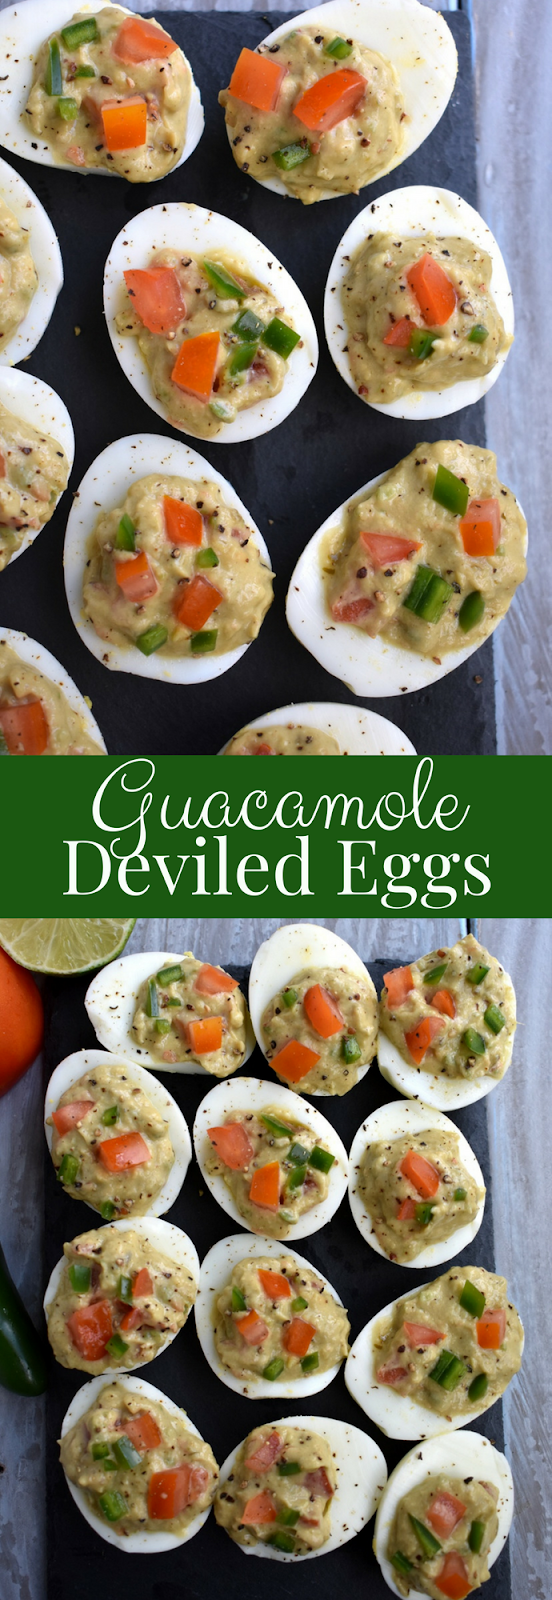 Guacamole Deviled Eggs is an awesome appetizer that features hard boiled egg whites filled with flavorful guacamole with jalapeno and tomatoes. www.nutritionistreviews.com